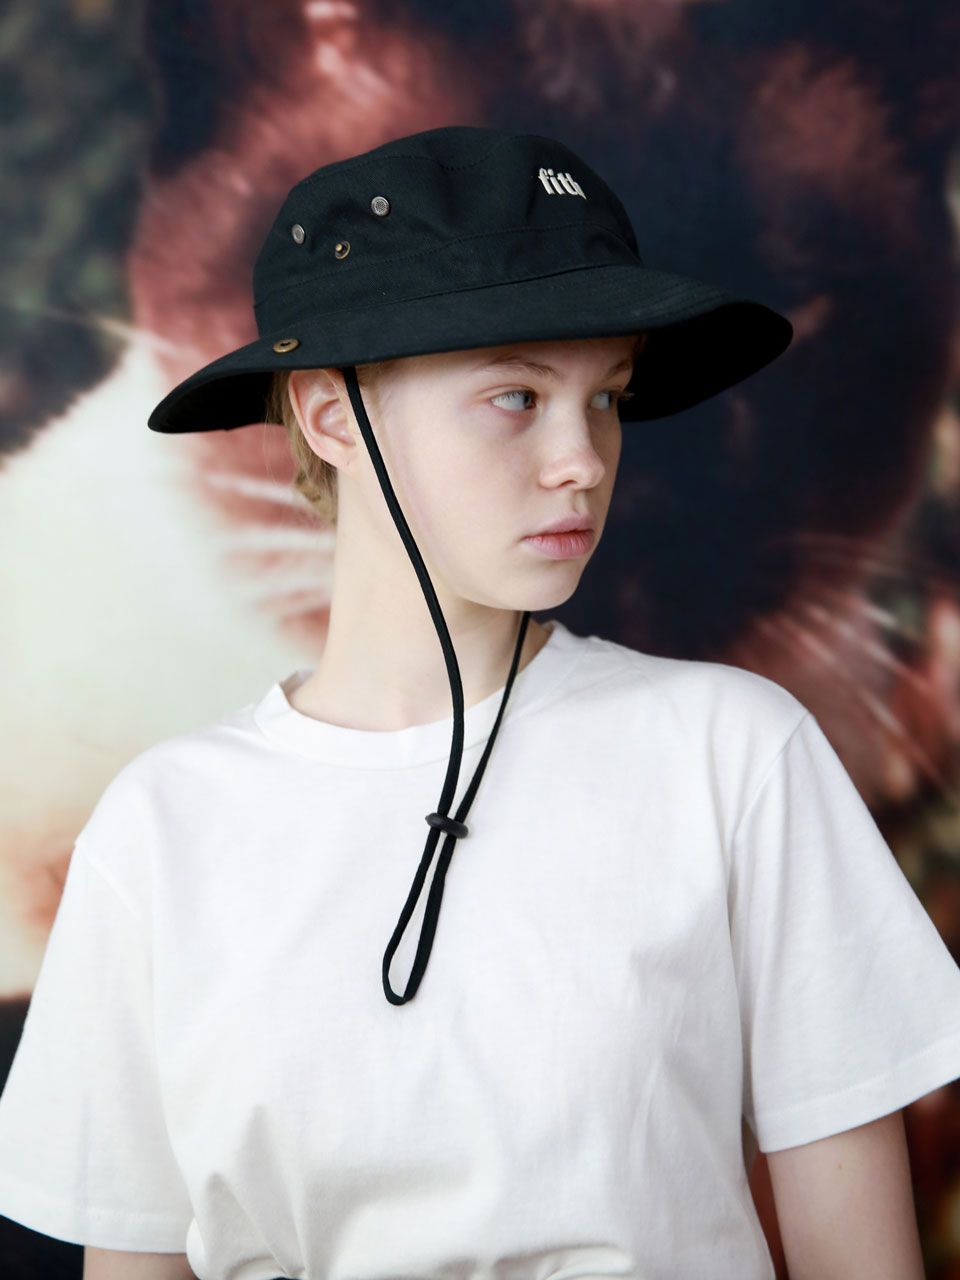 FITB LOGO SAFARI HAT